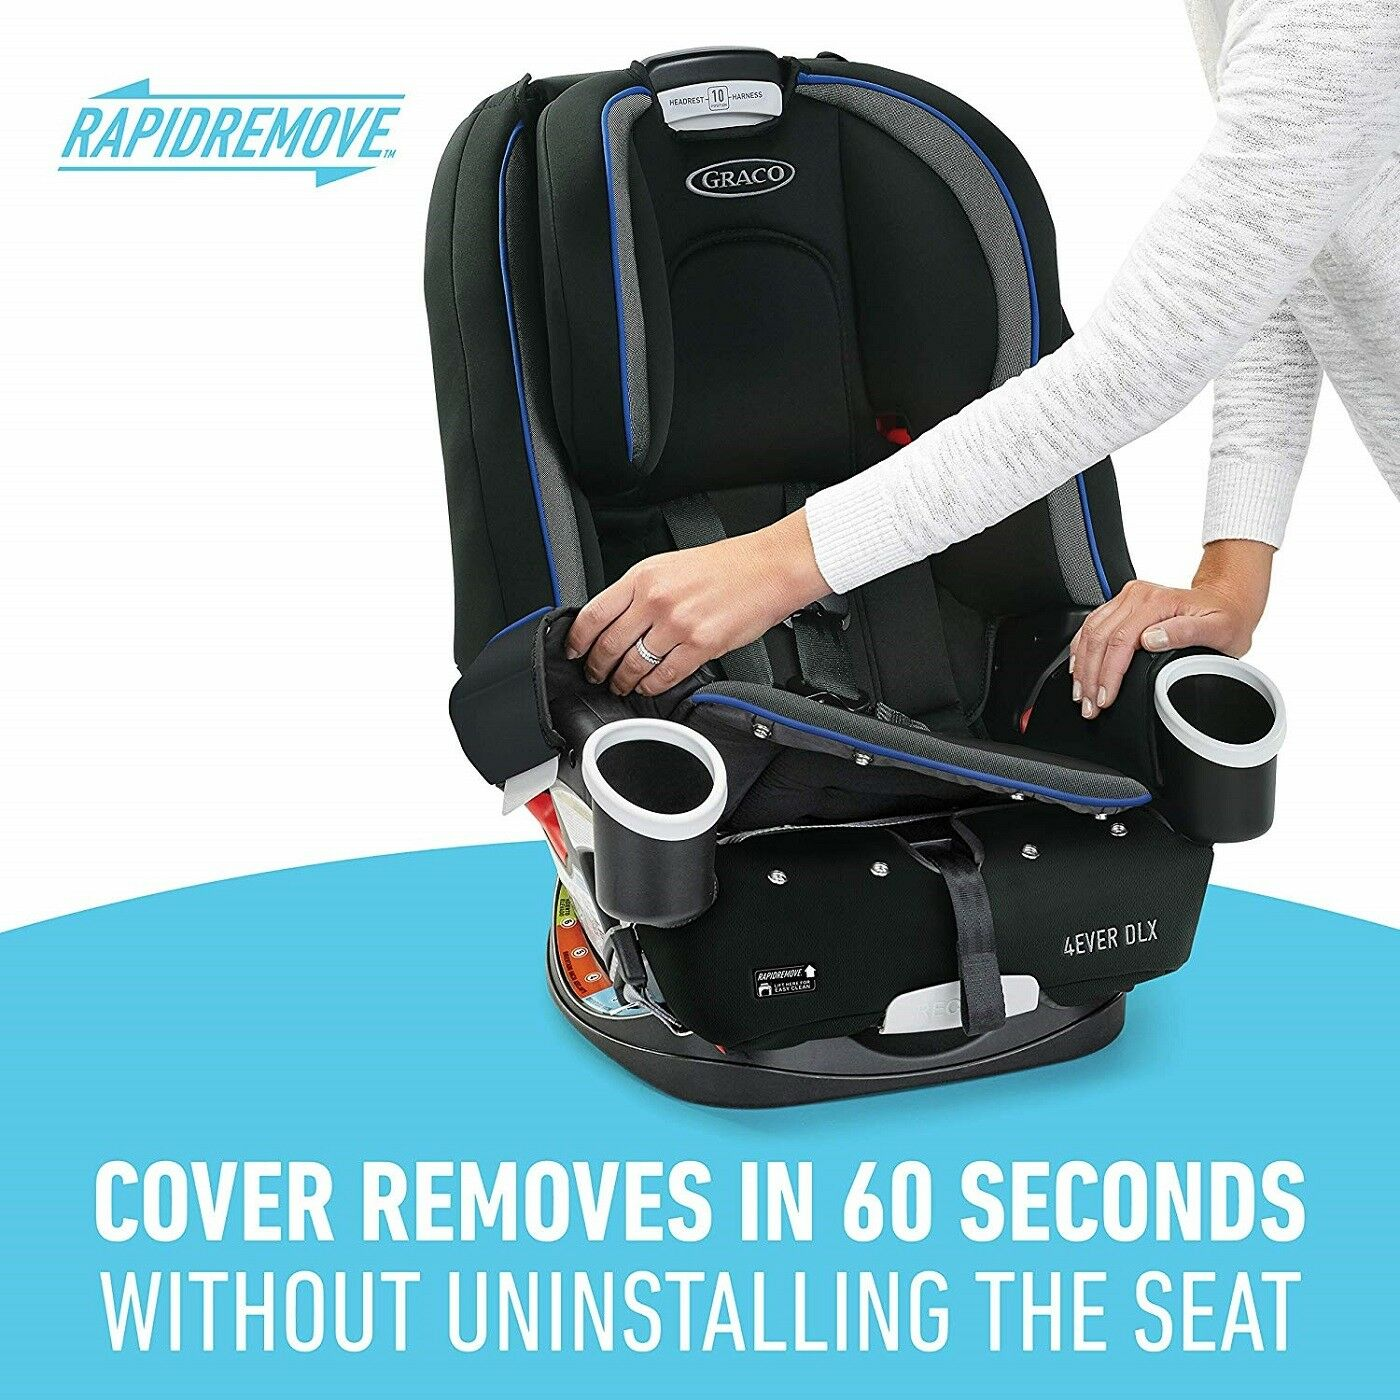 Graco Baby 4ever Dlx 4 In 1 Car Seat Infant Child Safety Joslyn Ebay